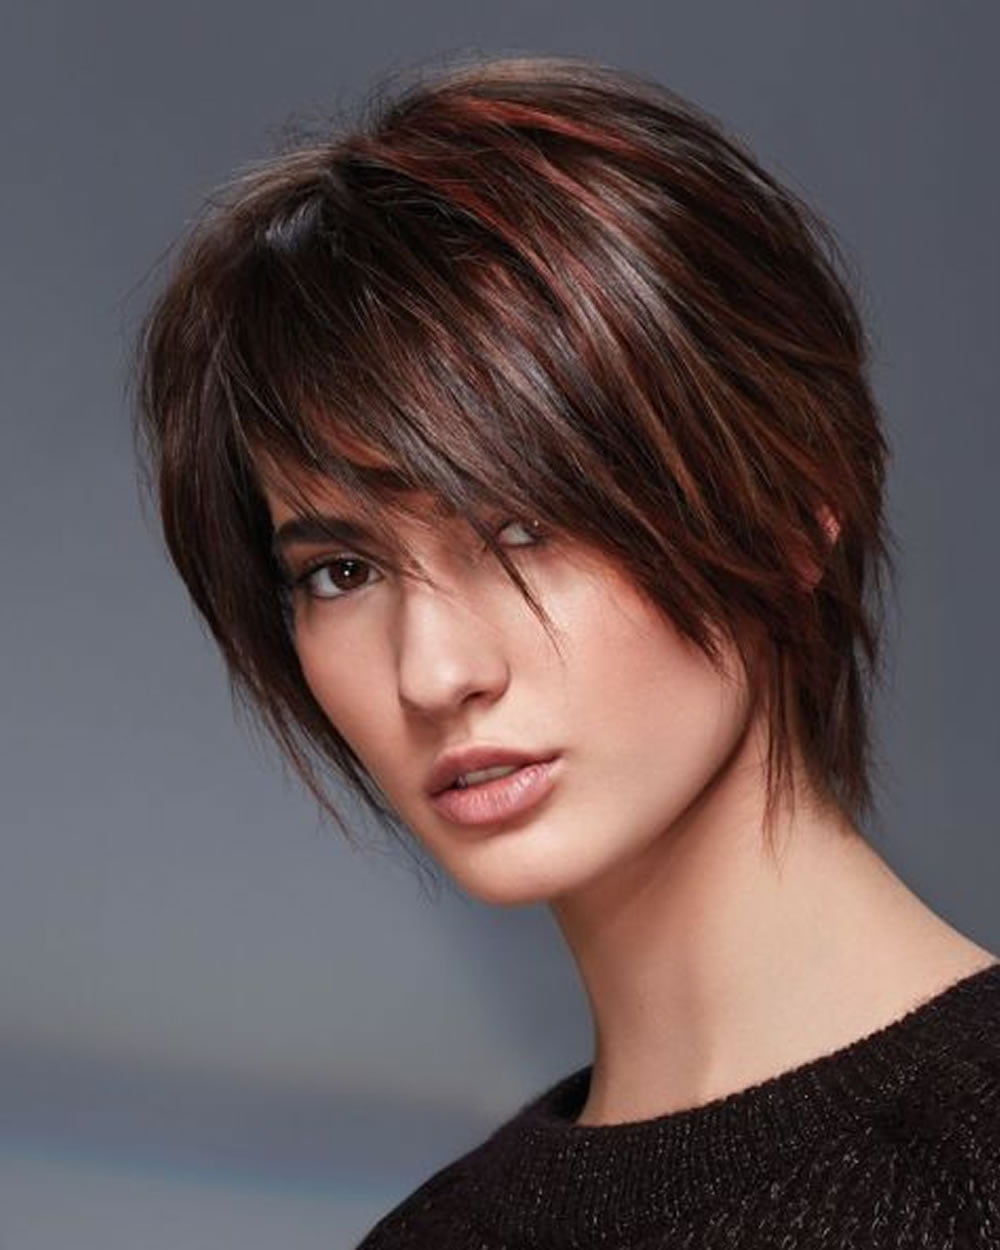 short haircuts for women with round faces hey best 13 haircuts for faces 9662 | Short haircuts for Women with round faces 2018 2019 6